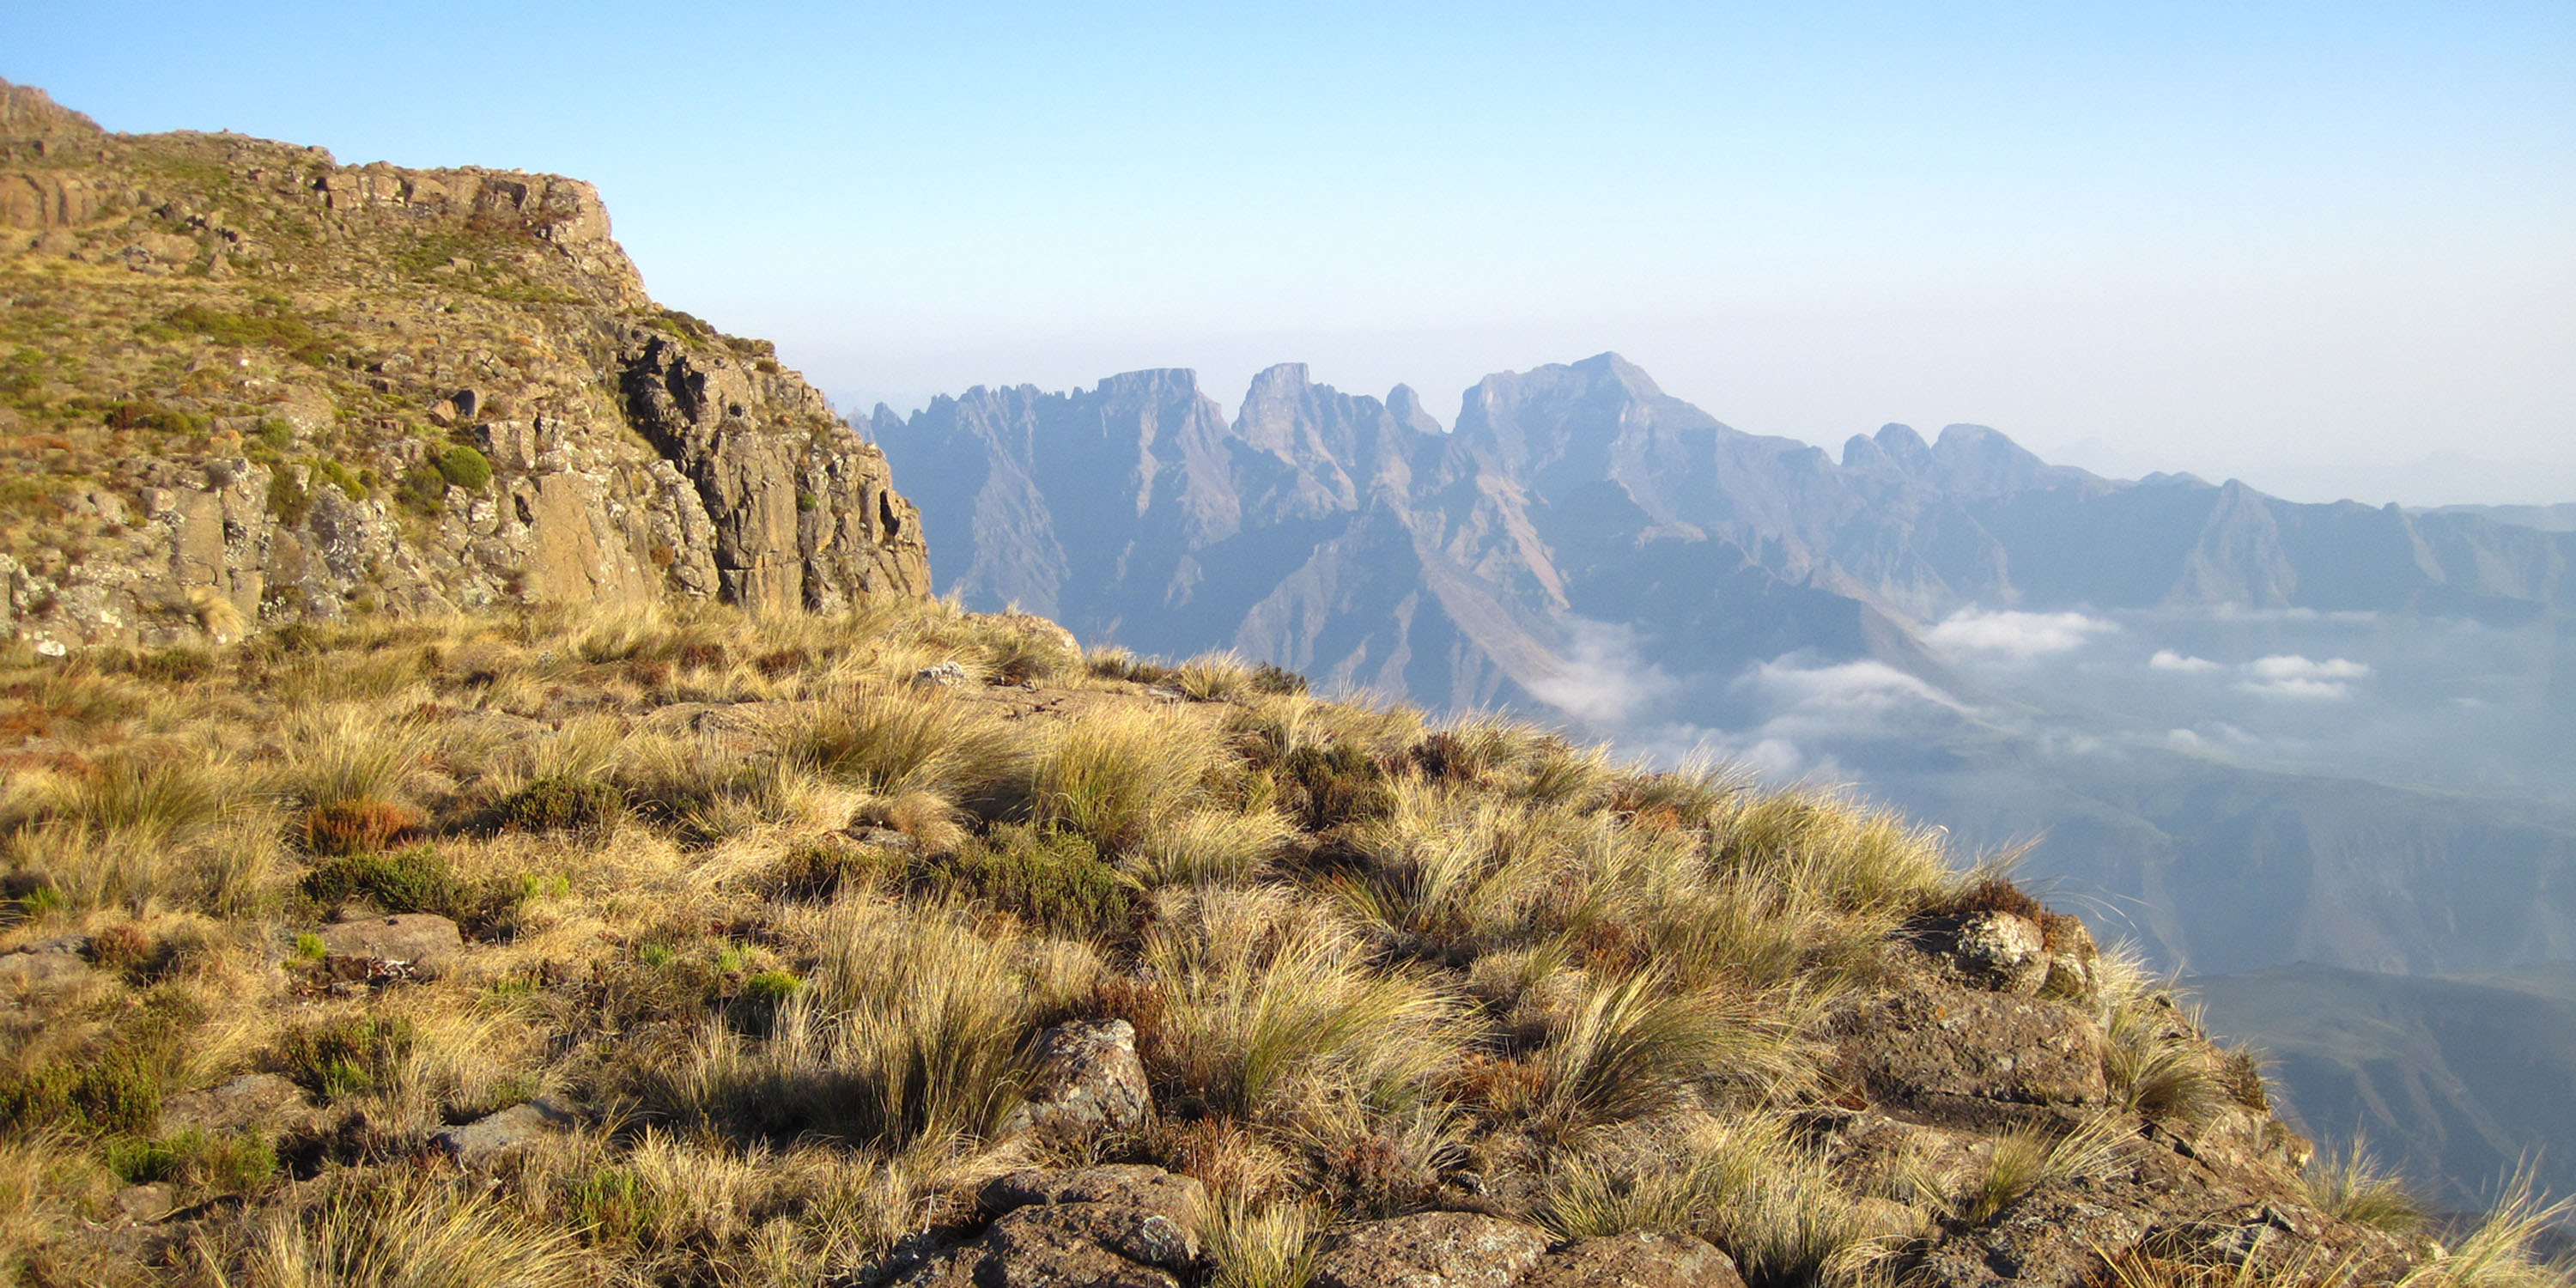 The View from Cleft Peak towards Cathedral Peak